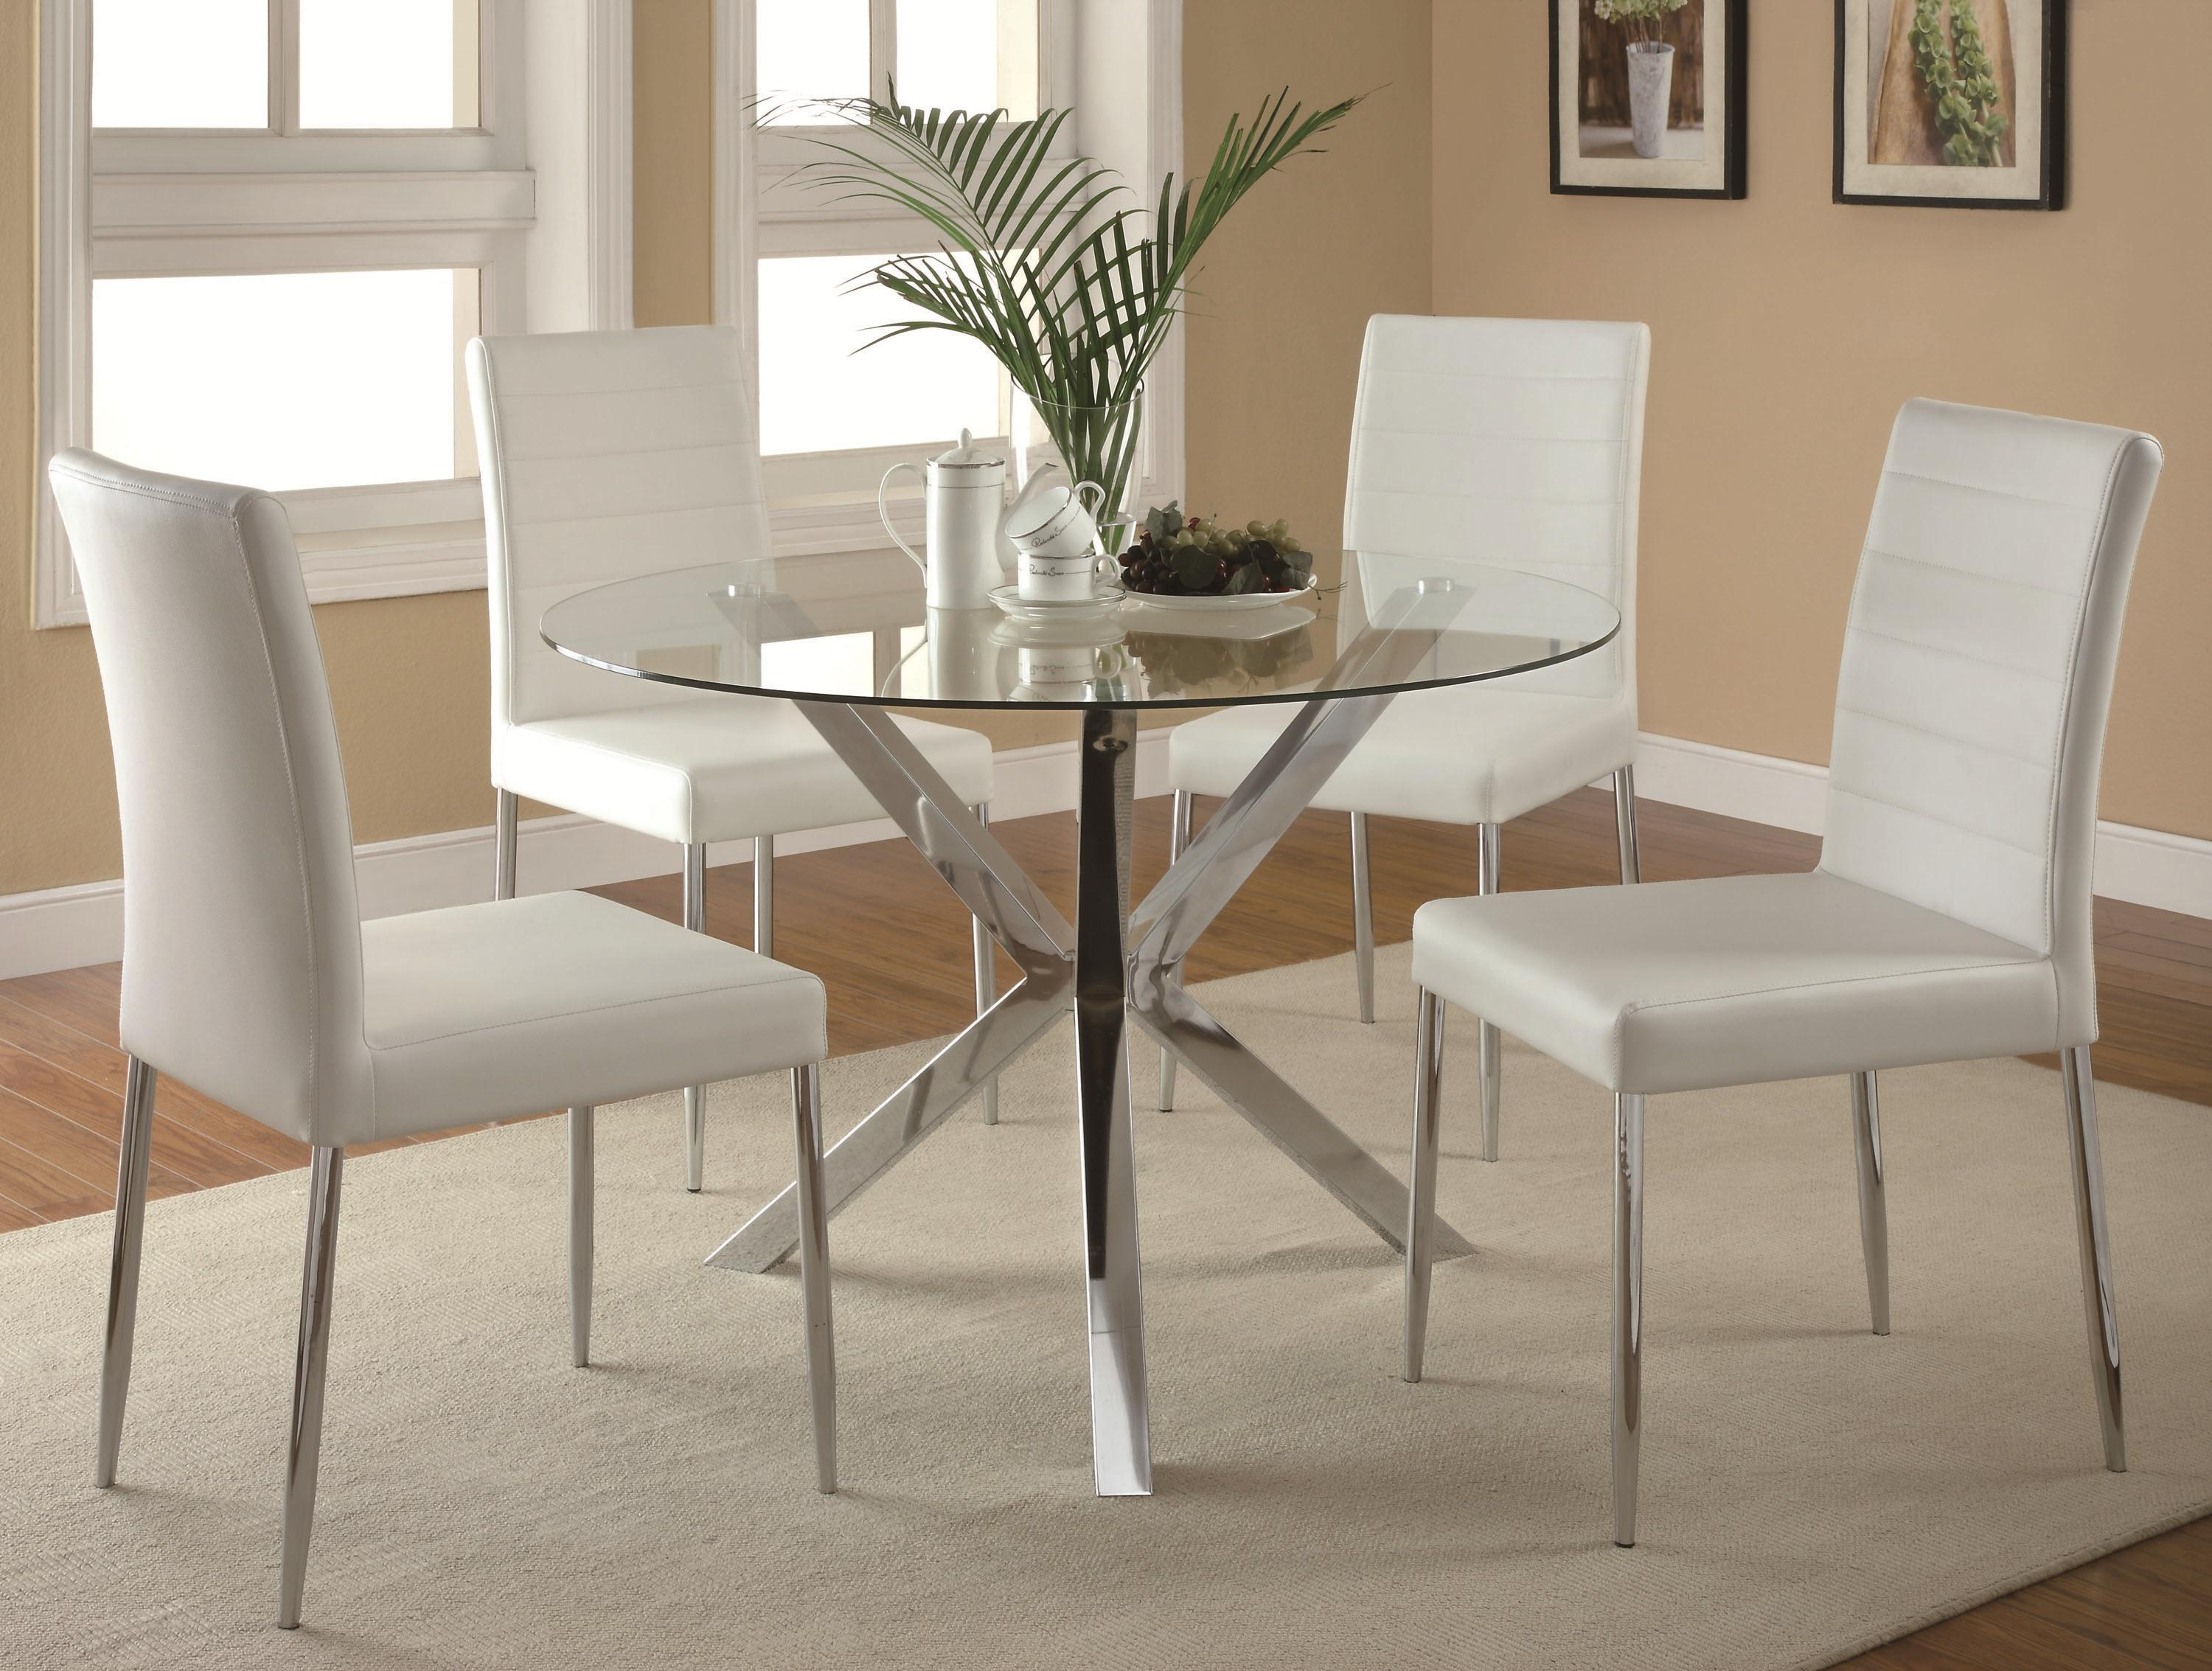 5-Piece Table u0026 Chair Set & Contemporary 5-Piece Glass Top Table and Chair Set by Coaster | Wolf ...